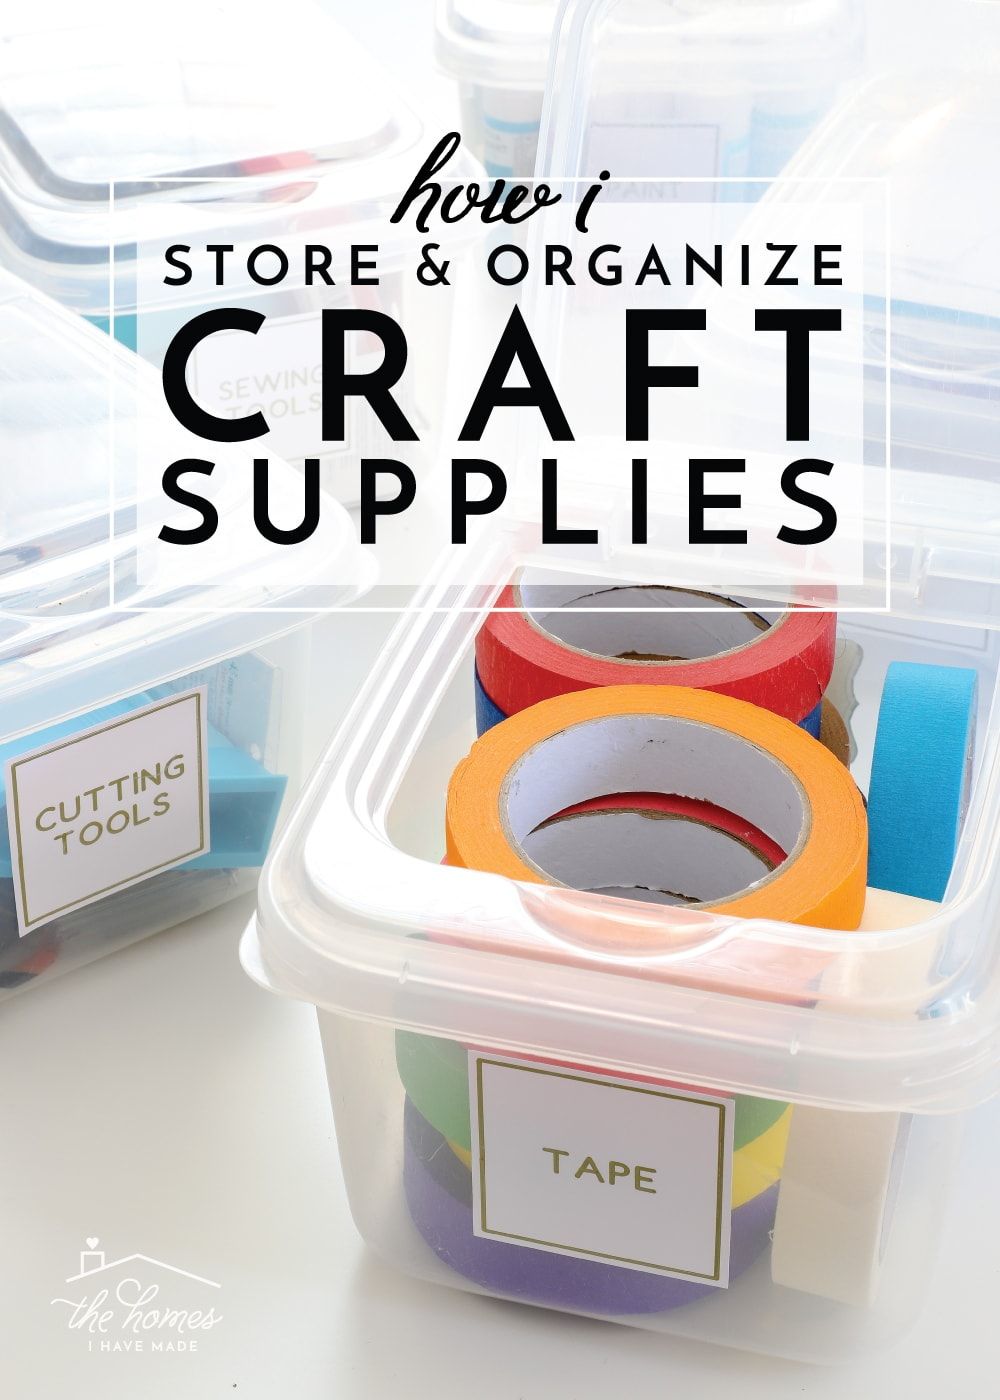 store craft supplies